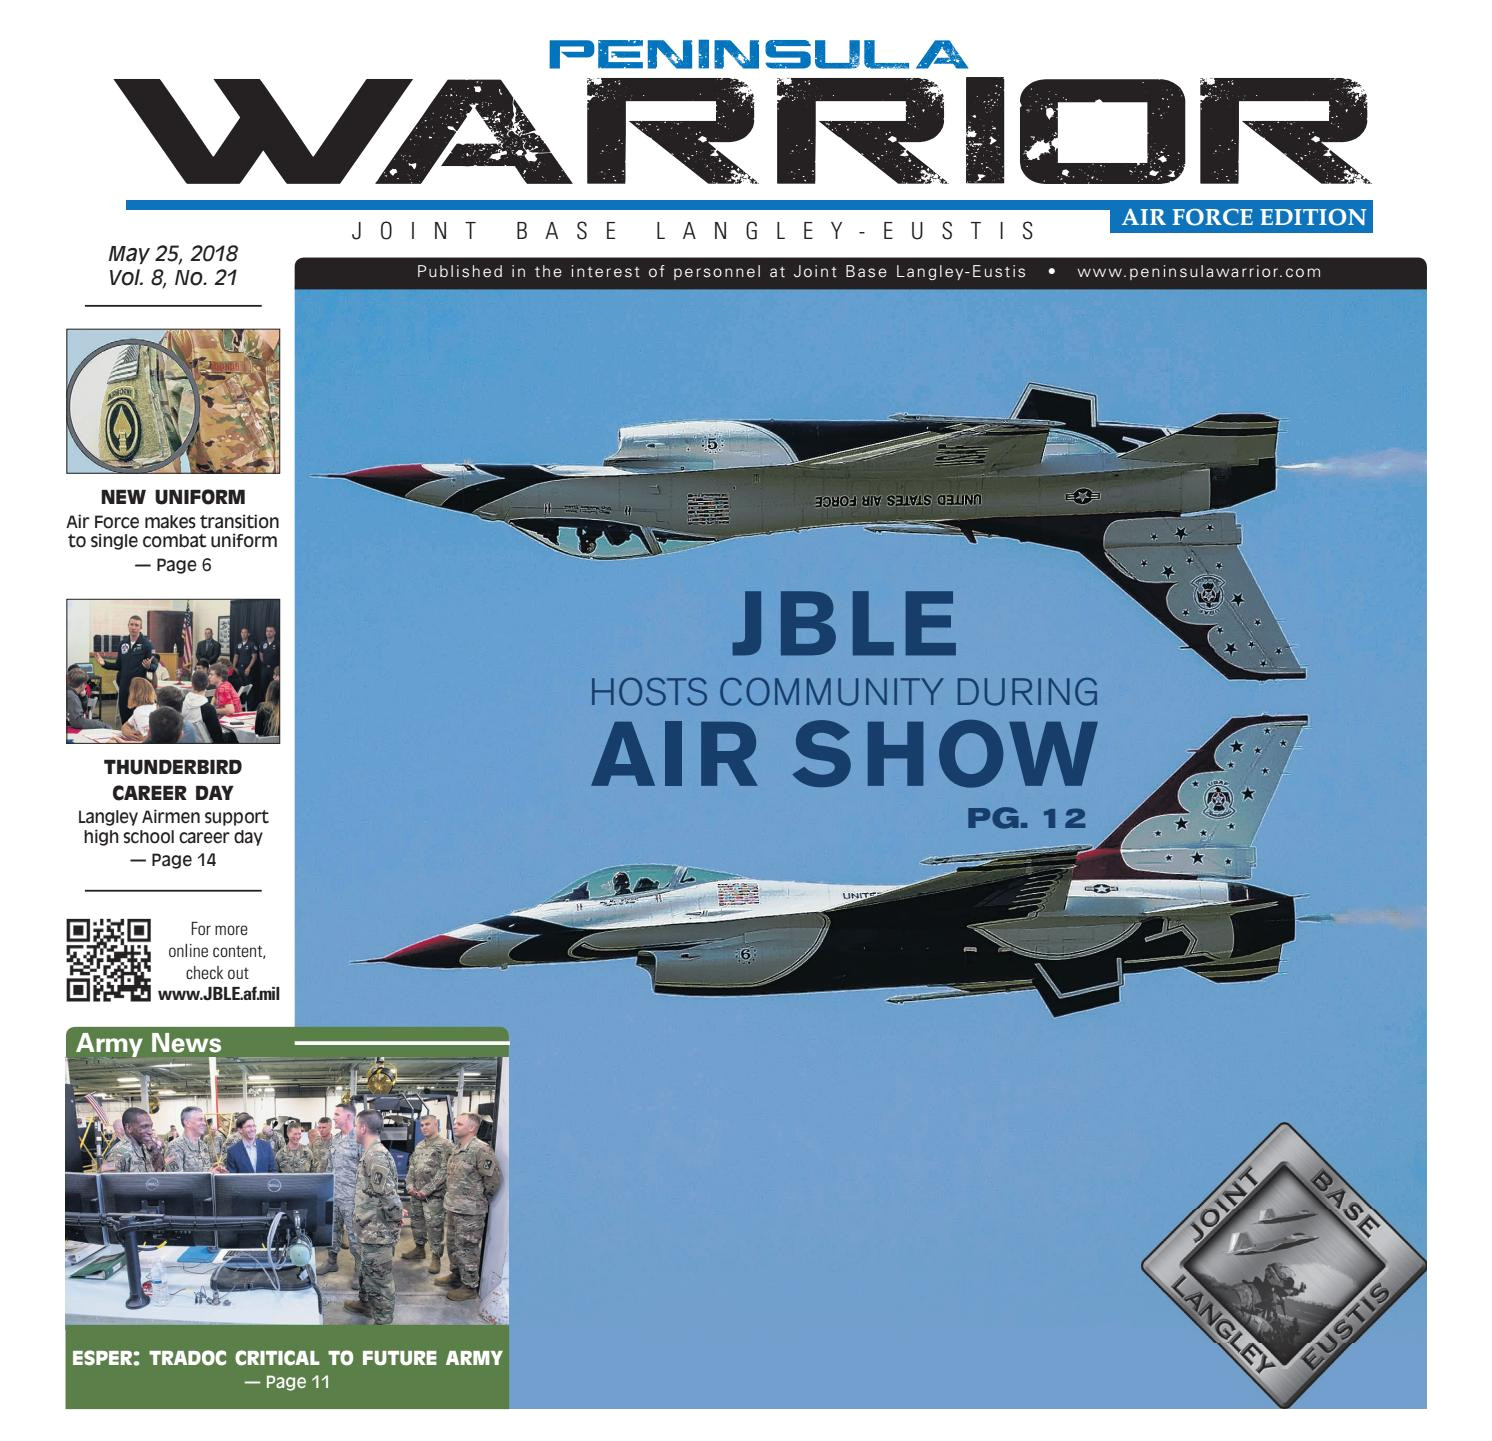 the peninsula warrior air force edition 05 25 18 by military news issuu